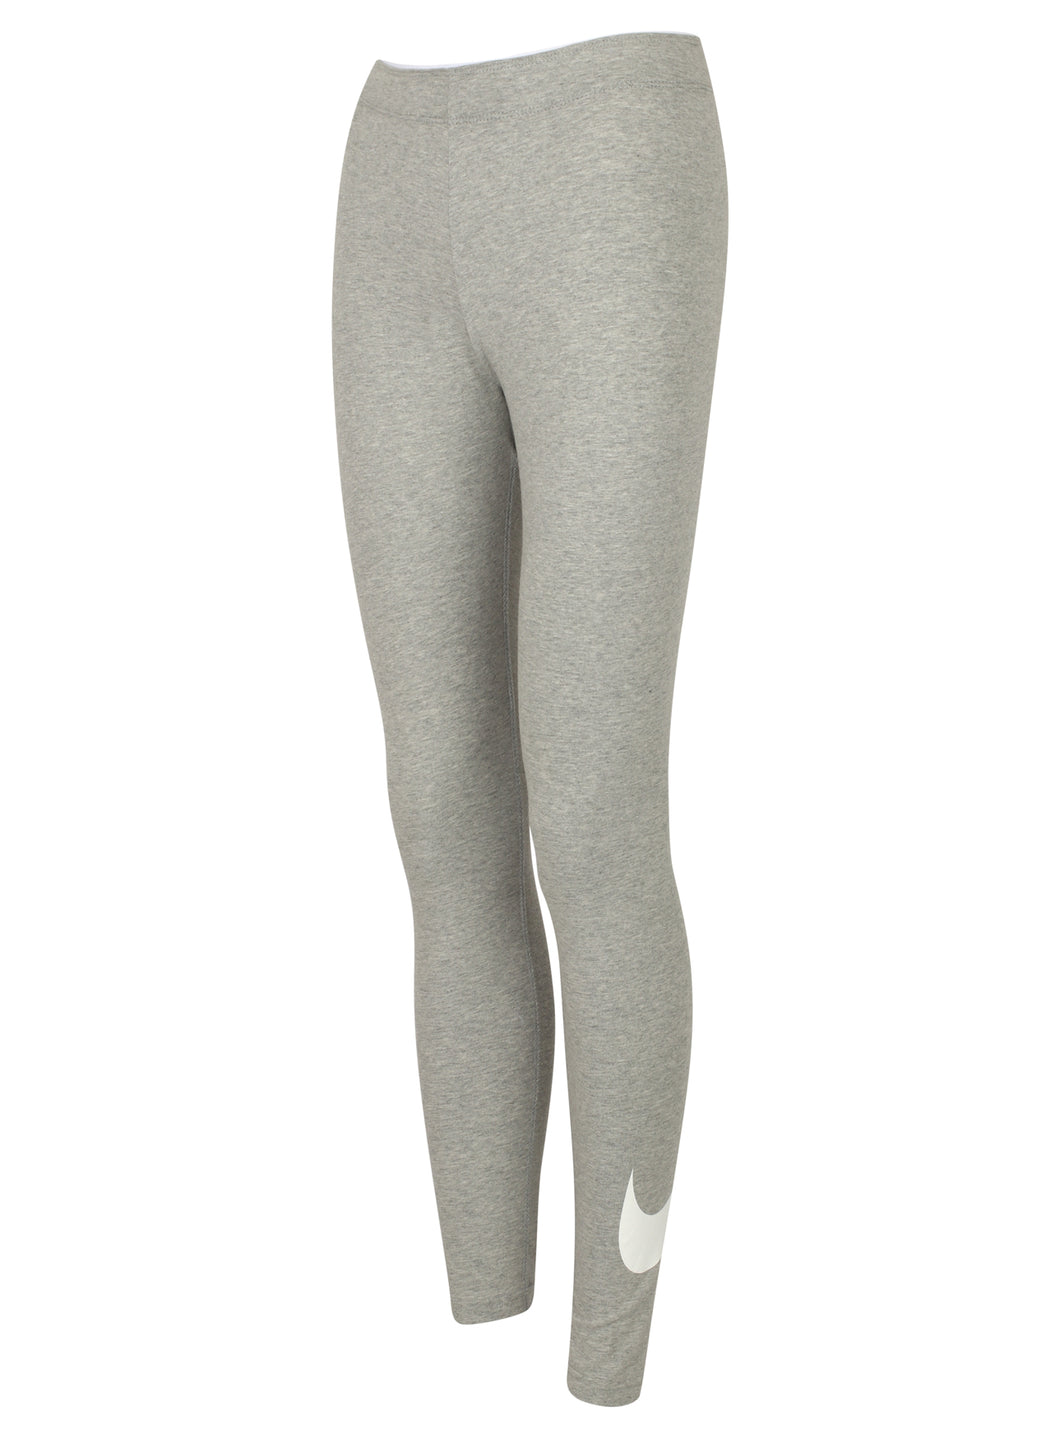 Nike Women's Sportswear Grey Swoosh Cotton Gym Leggings